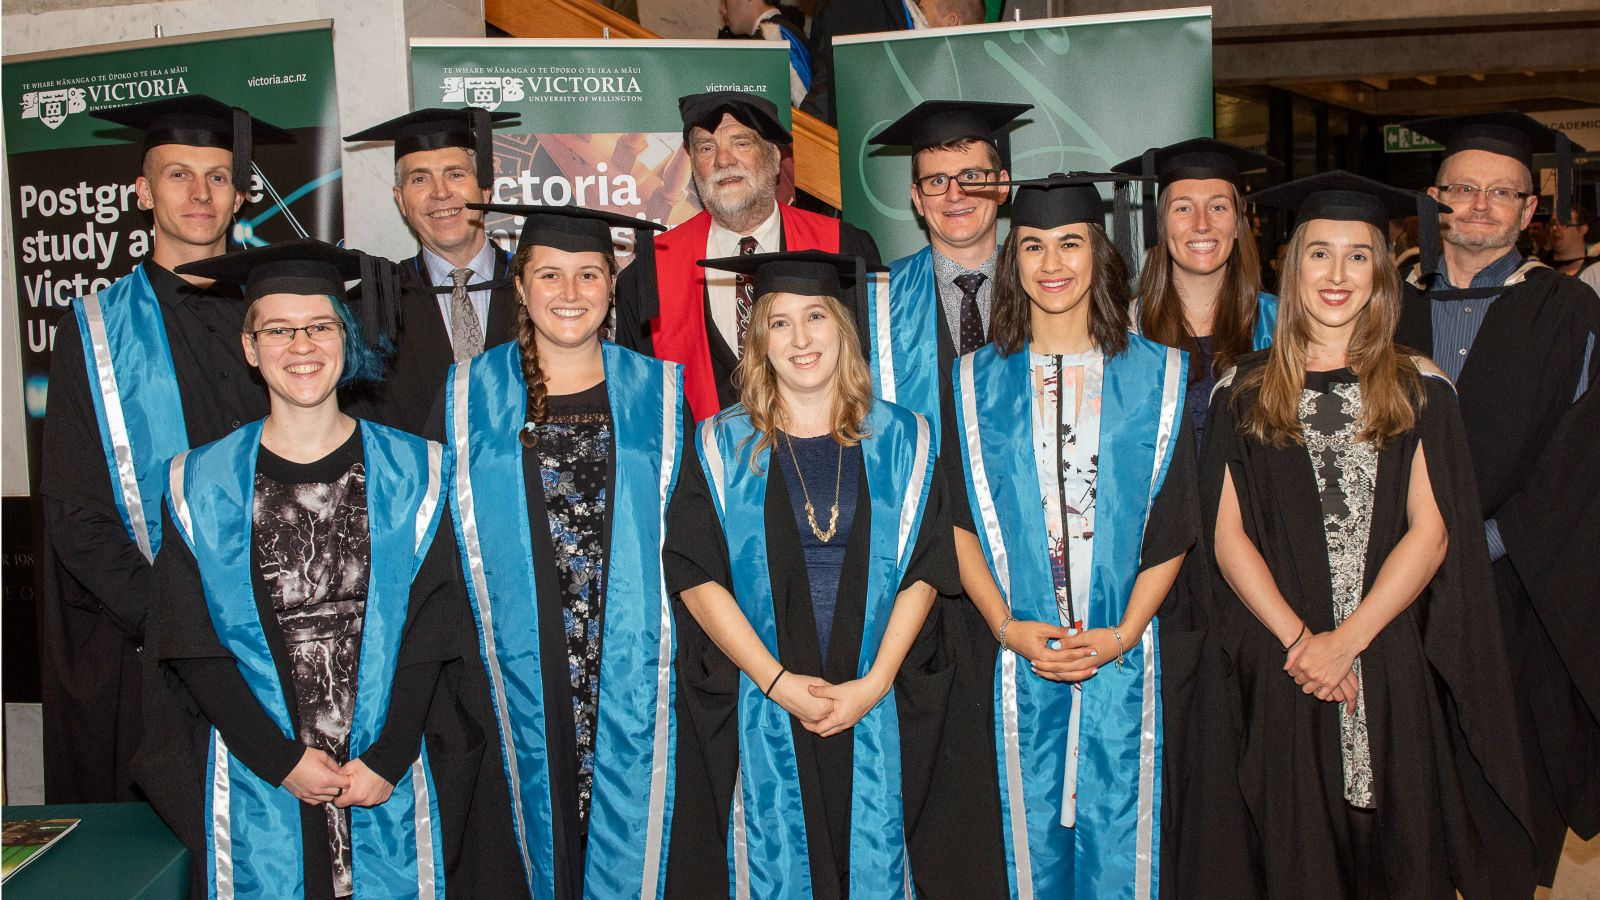 The eight Meteorology graduates in two rows with the programme director and advisors from MetService. They all wear graduation caps and gowns and there are Victoria banners behind them.